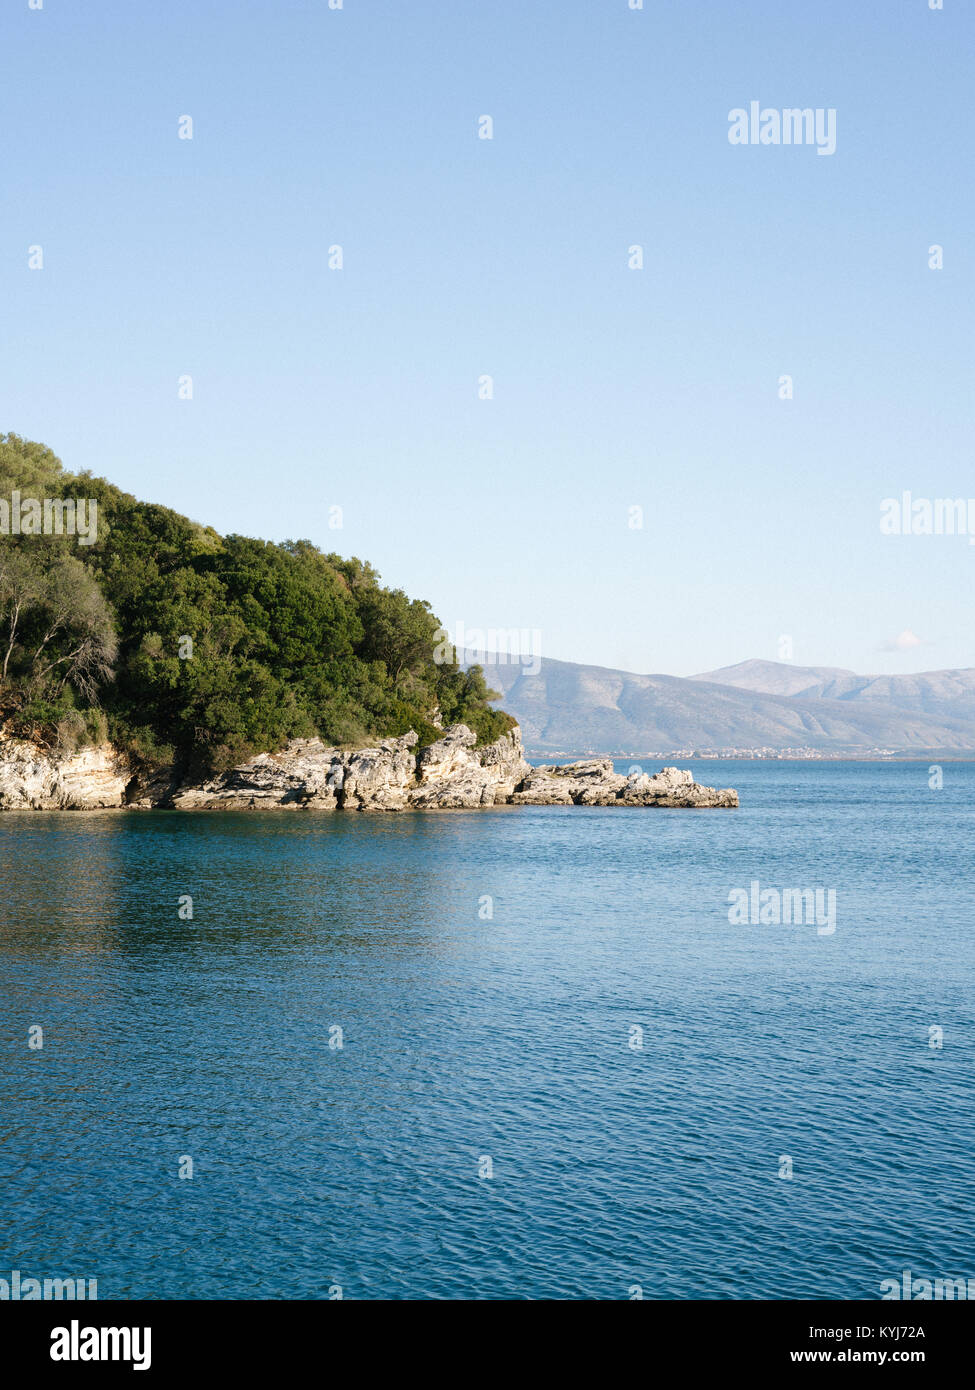 Gialiskari bay, the next bay from The Durrell's White house. - Stock Image